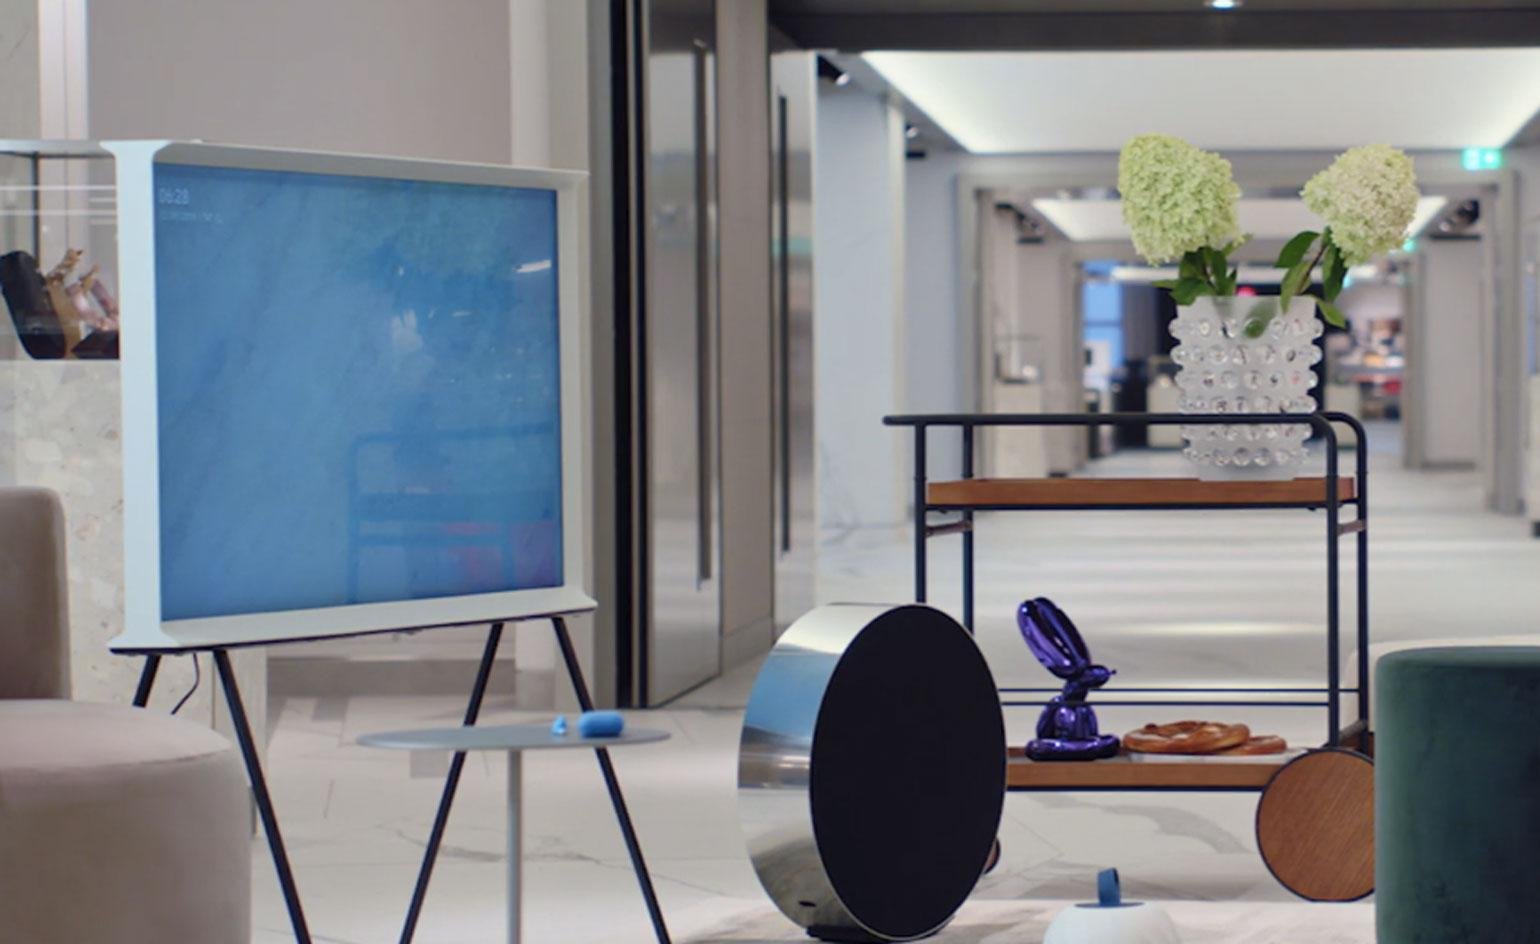 Discover a nexus of contemporary design and cutting-edge tech at Harrods